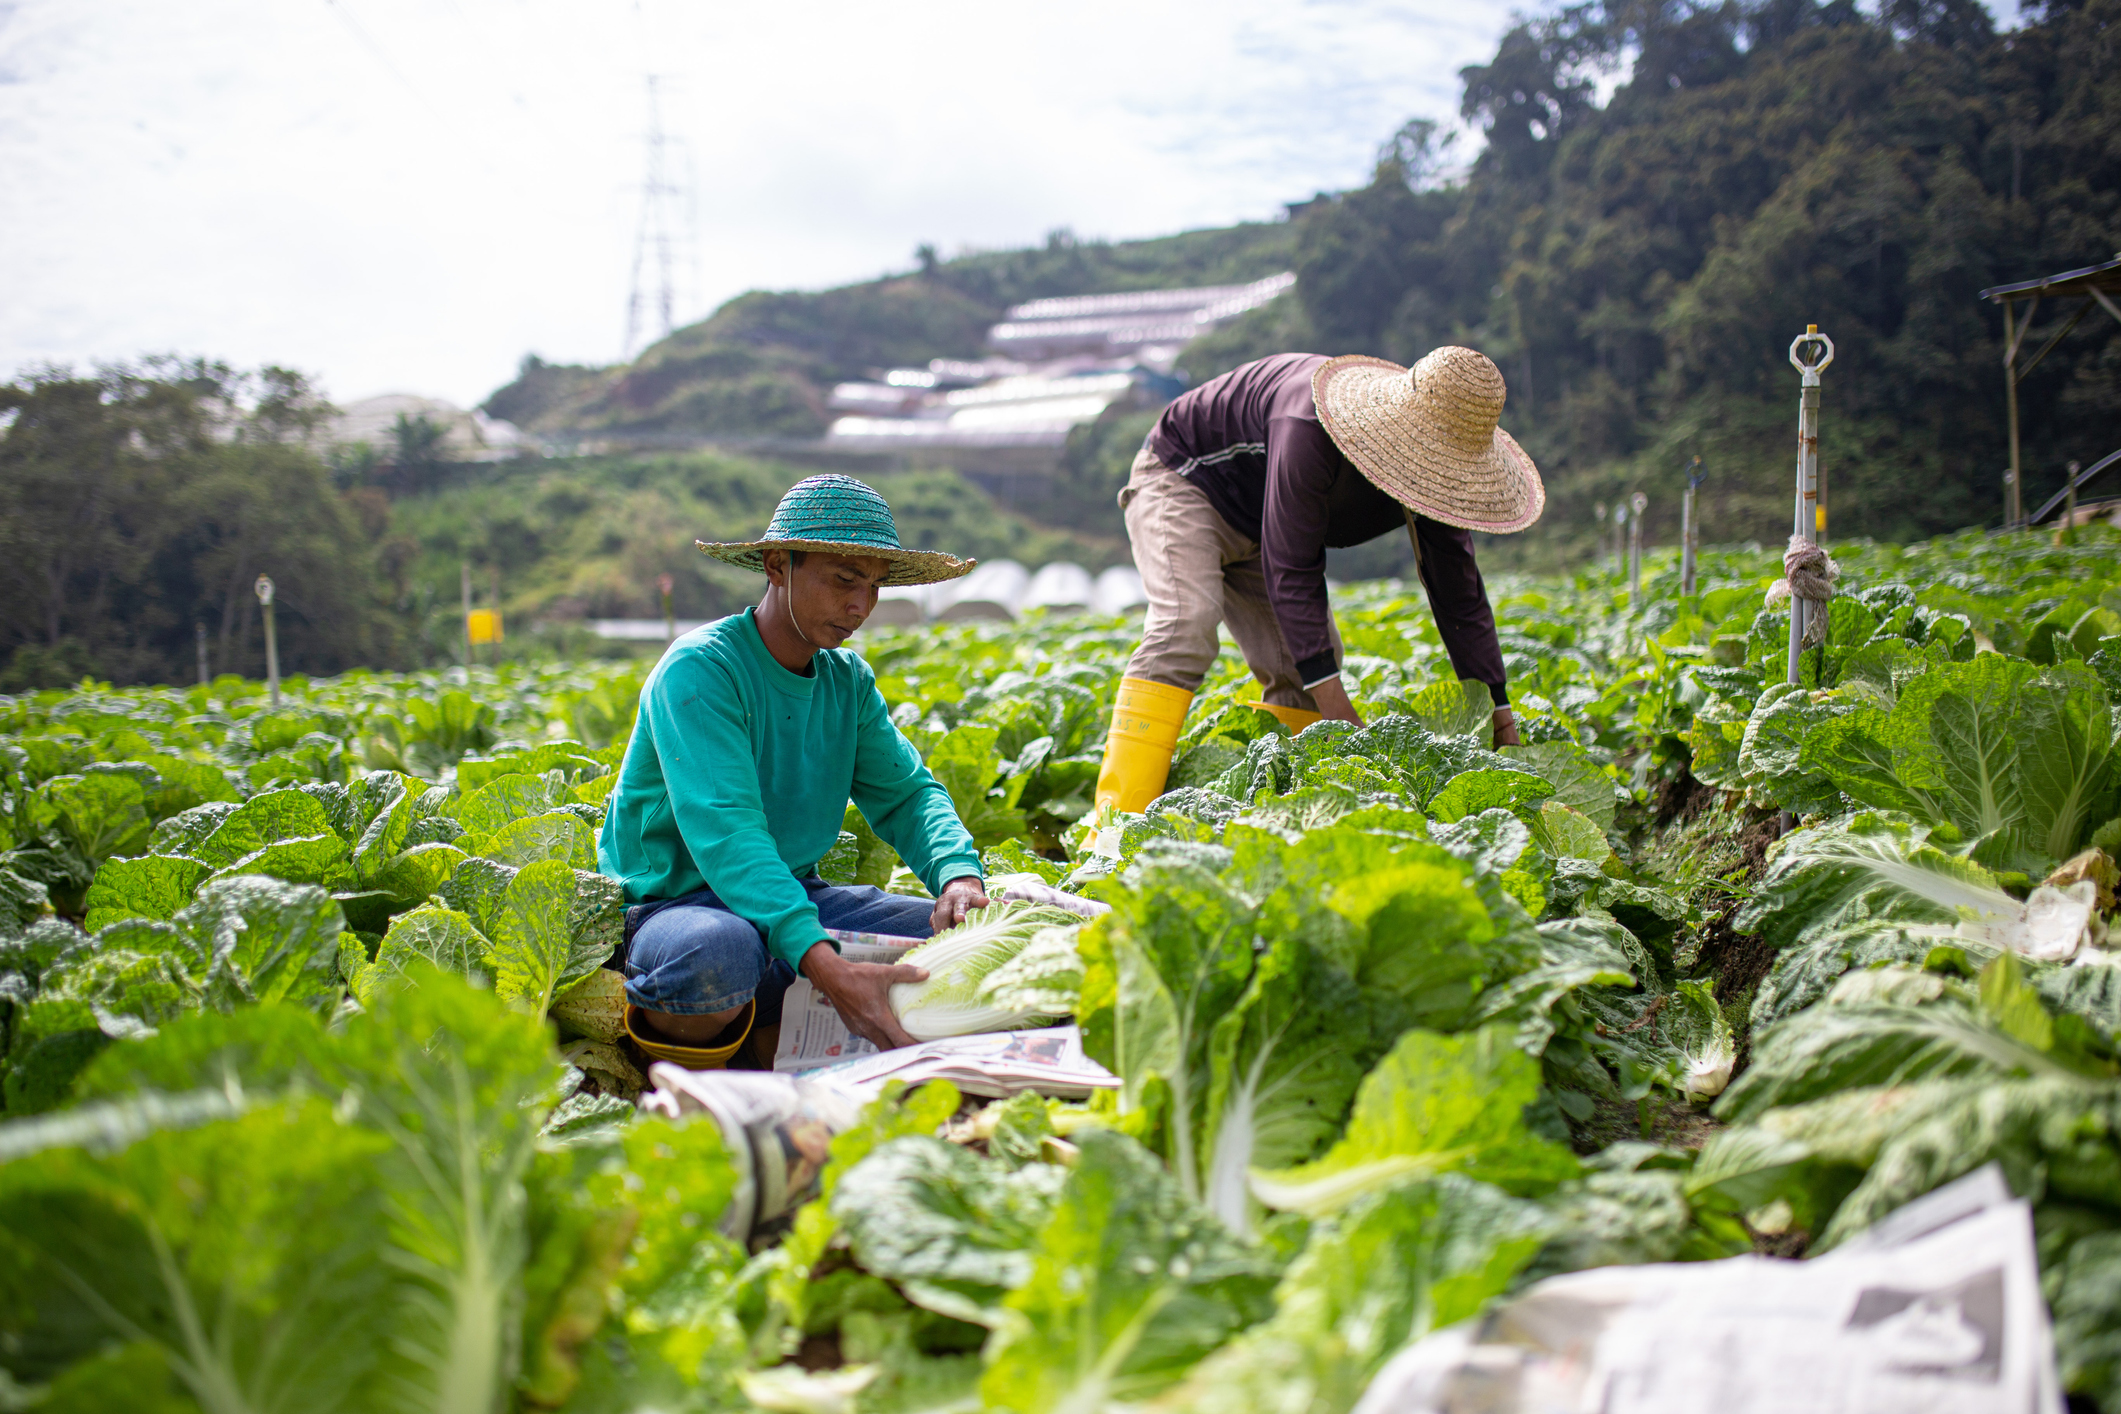 Sustainable food production at a local level